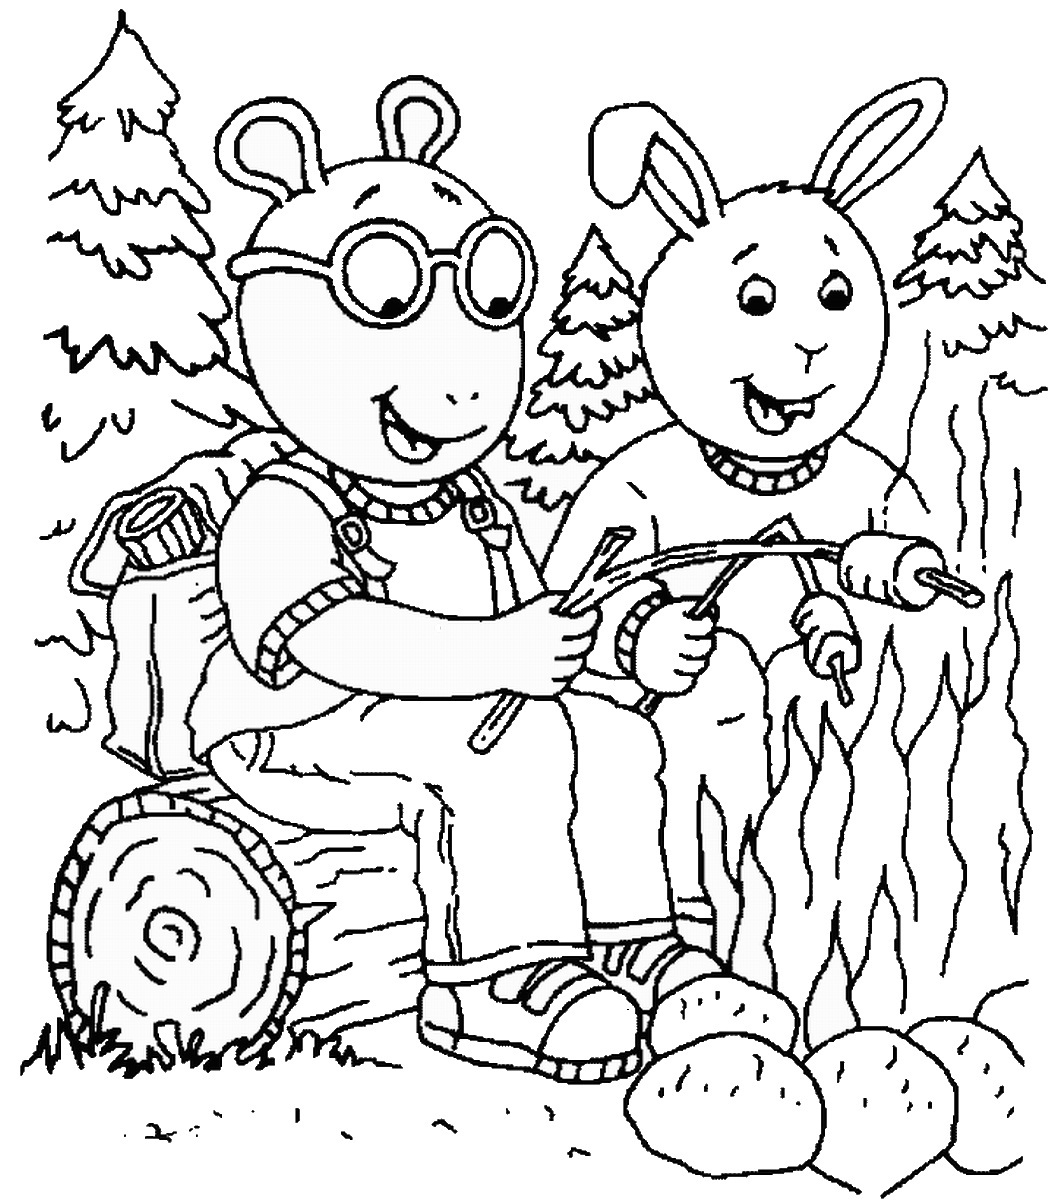 authur coloring pages Coloring Pages Arthur And Friends | Coloring Pages authur coloring pages